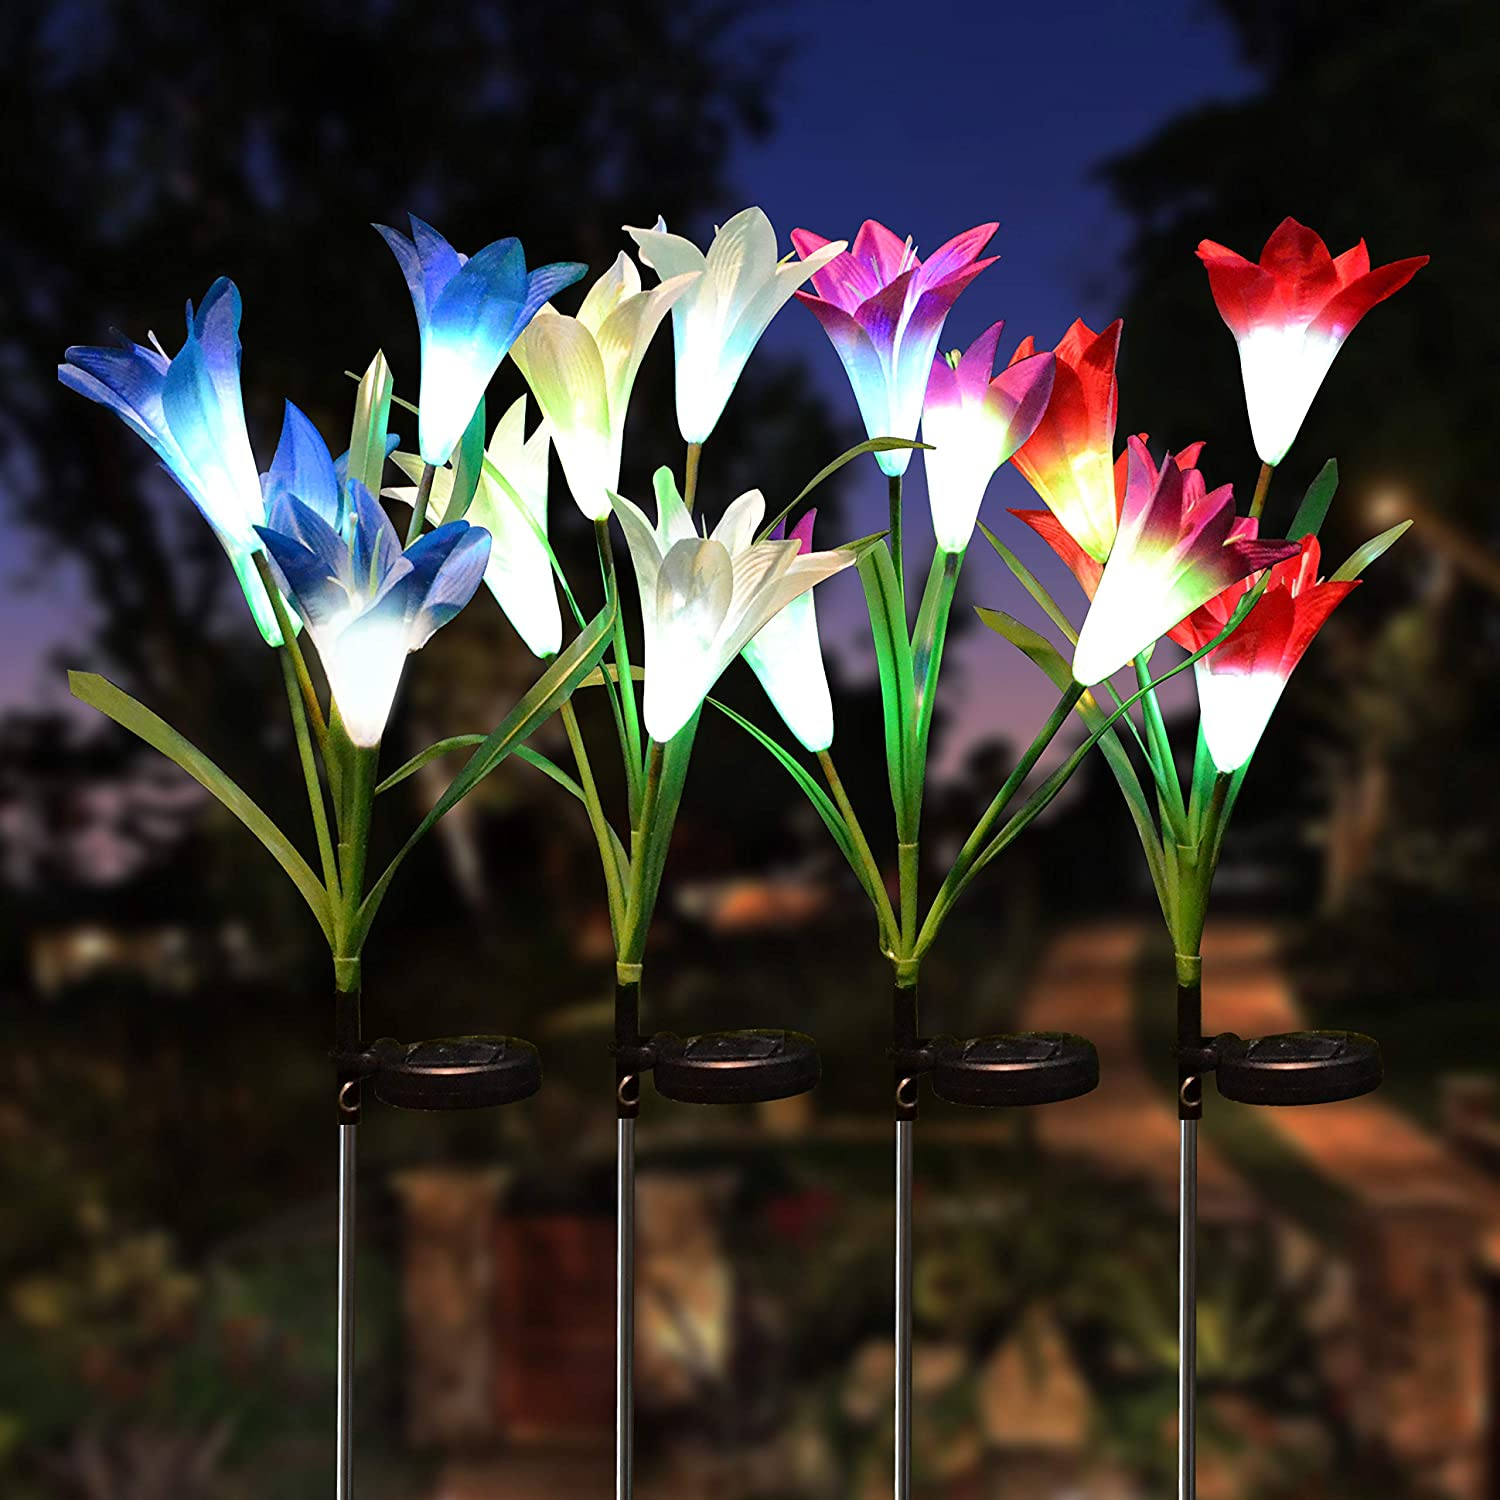 Joiedomi Lily Flower Multi-Color Changing LED Solar Yard Garden Stake Lights 4 Pack, Pathway Outdoor Stake Lights, Waterproof for Walkway, Pathway, Yard, Lawn, Patio or Courtyard